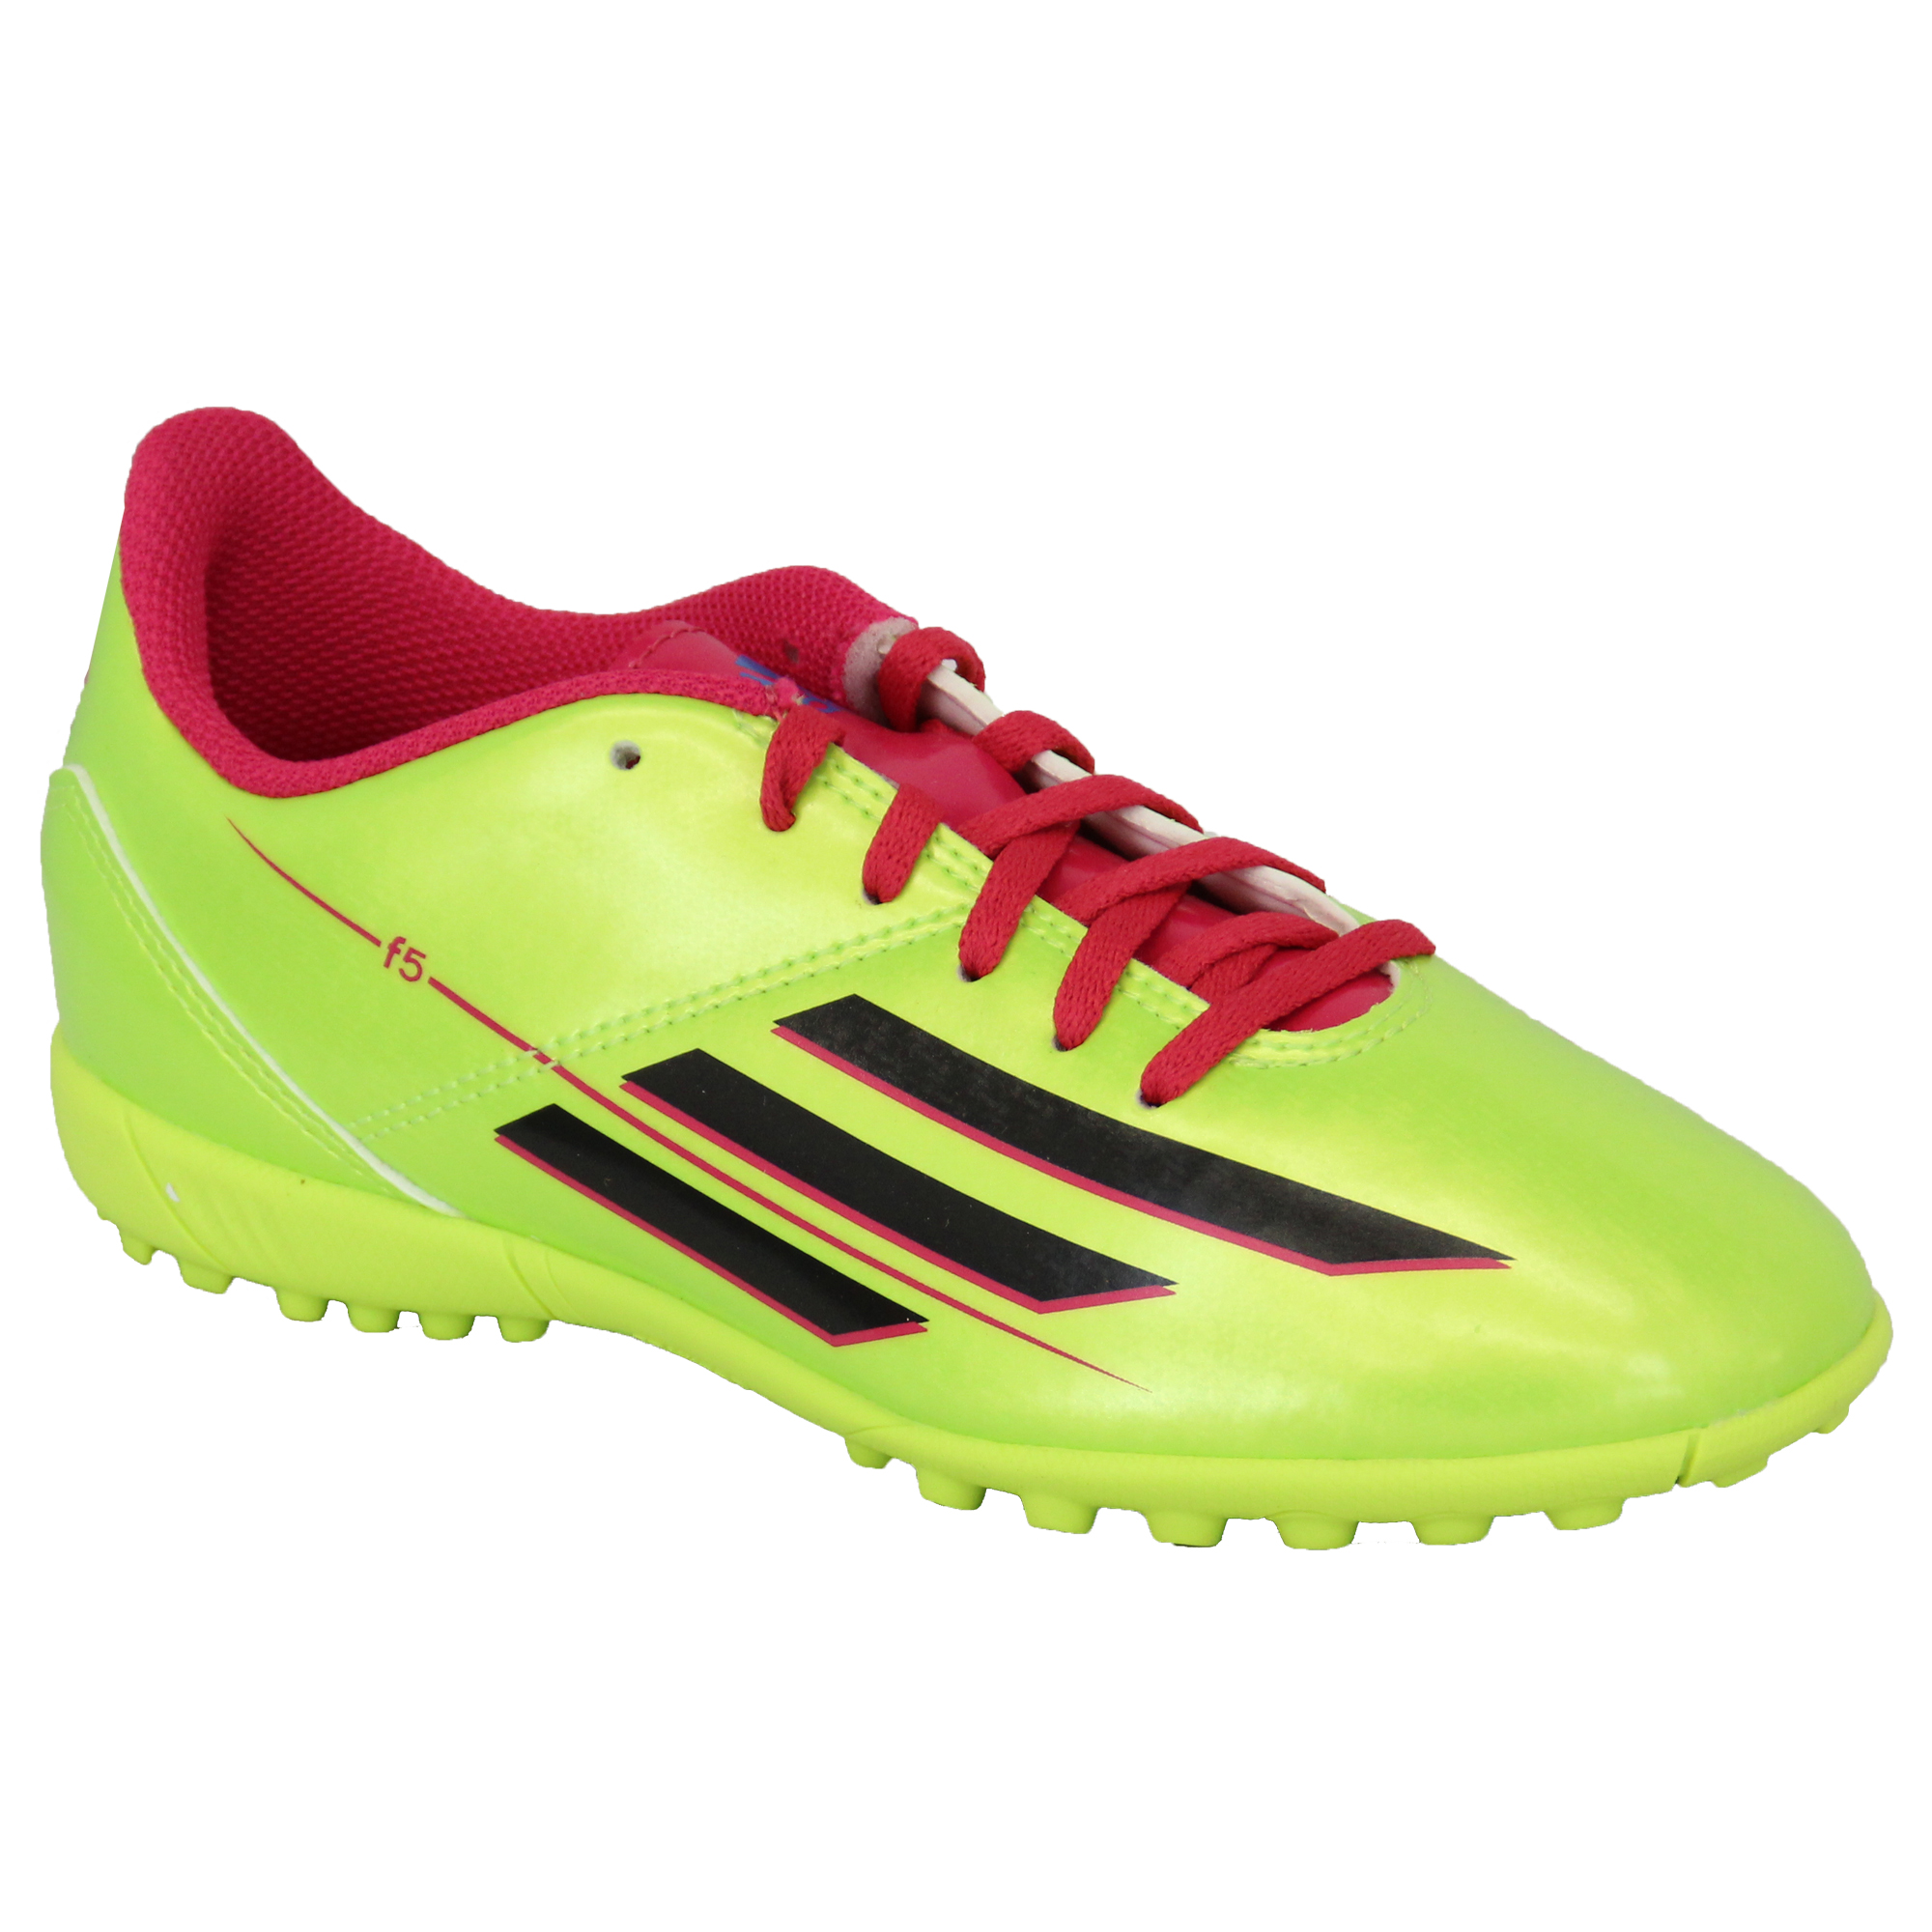 Boys-ADIDAS-Trainers-Kids-Football-Soccer-Astro-Turf-Shoes-Lace-Up-Neon-Youth thumbnail 12